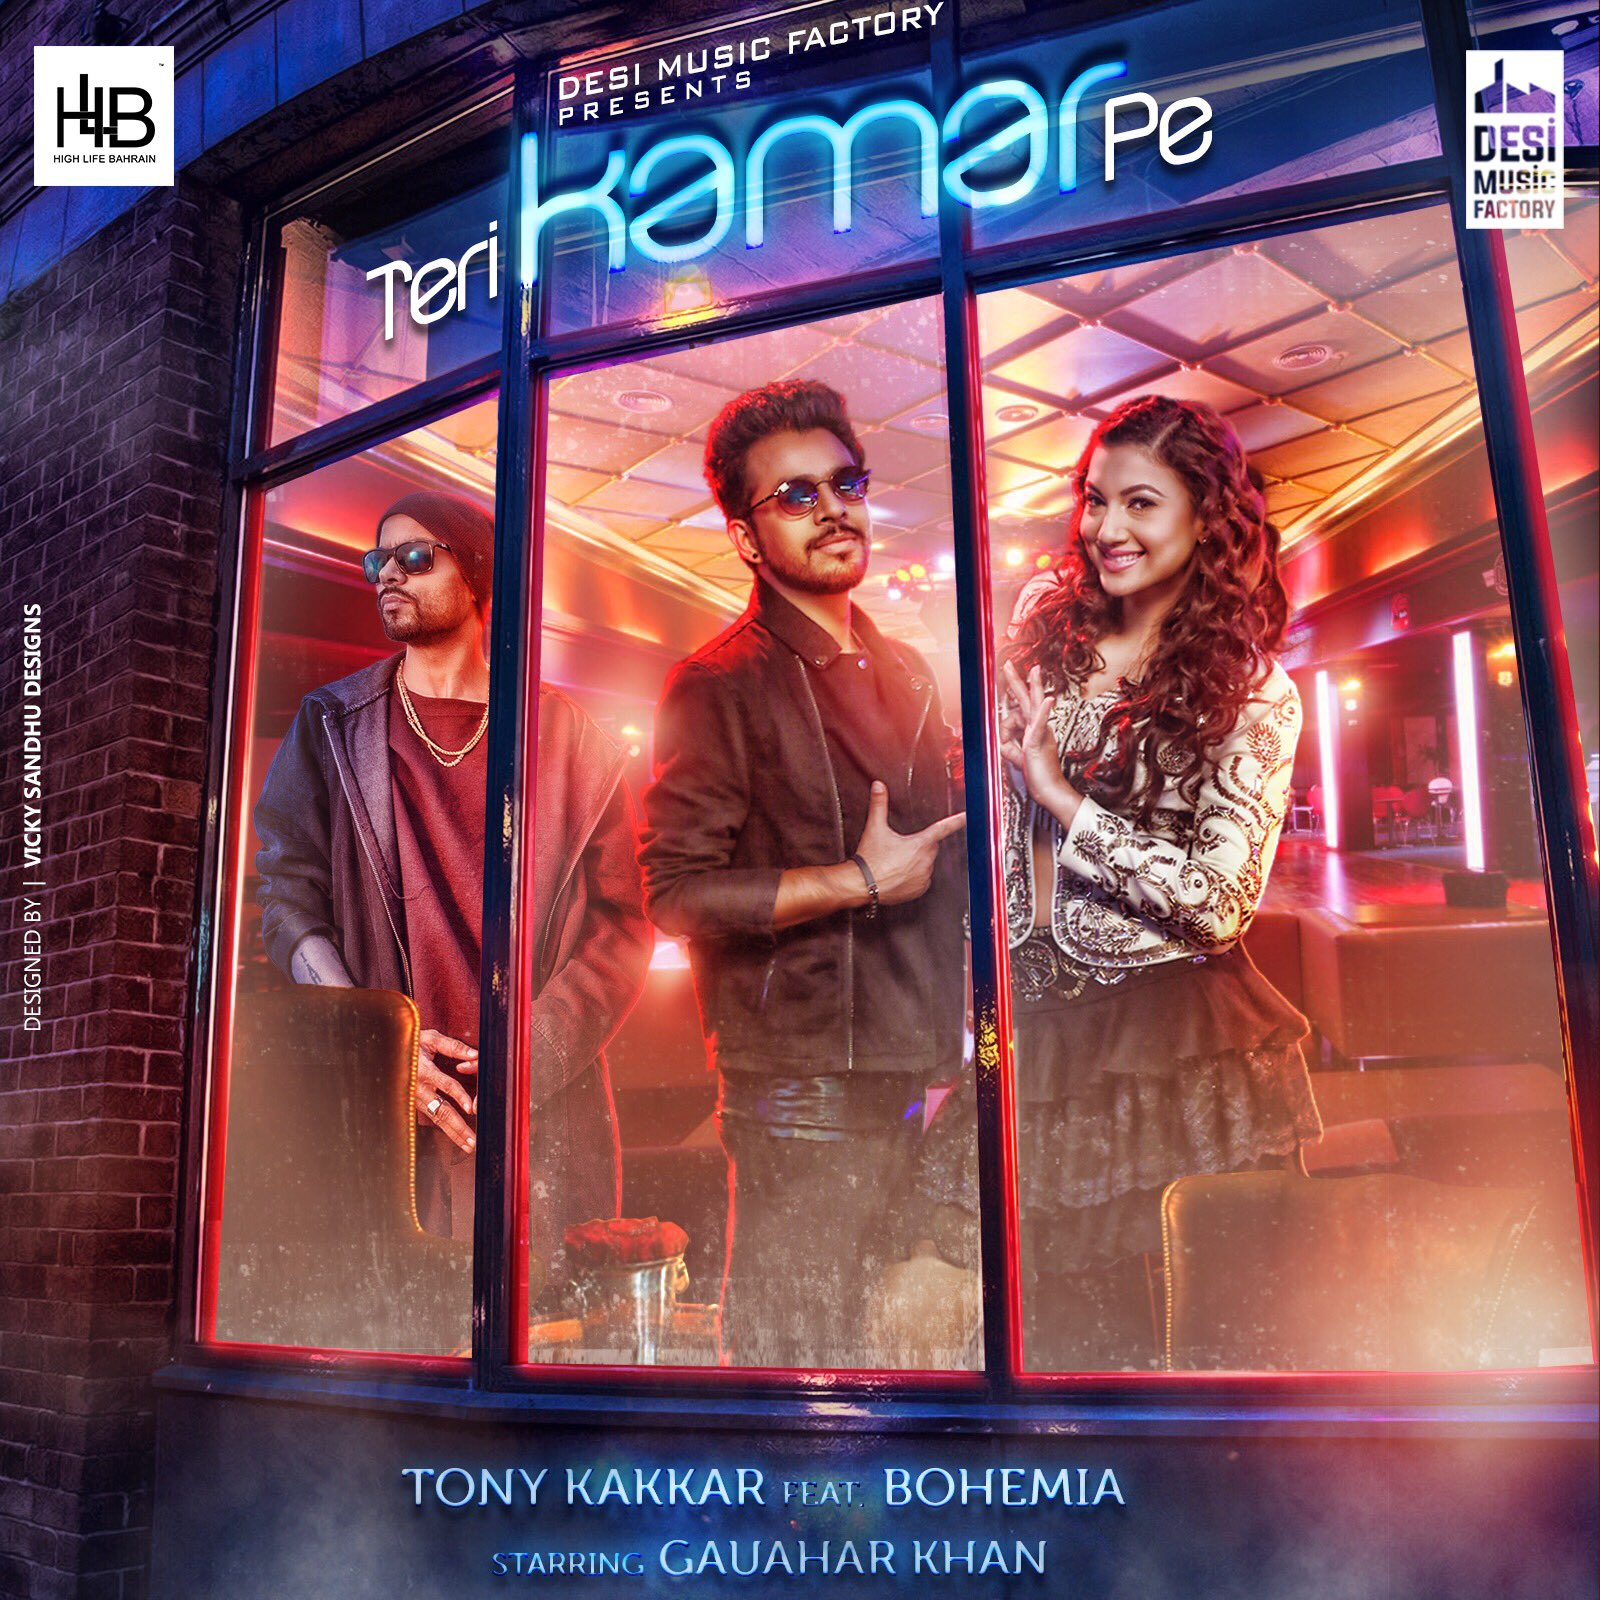 Teri Kamar Pe Is Out On iTunes!